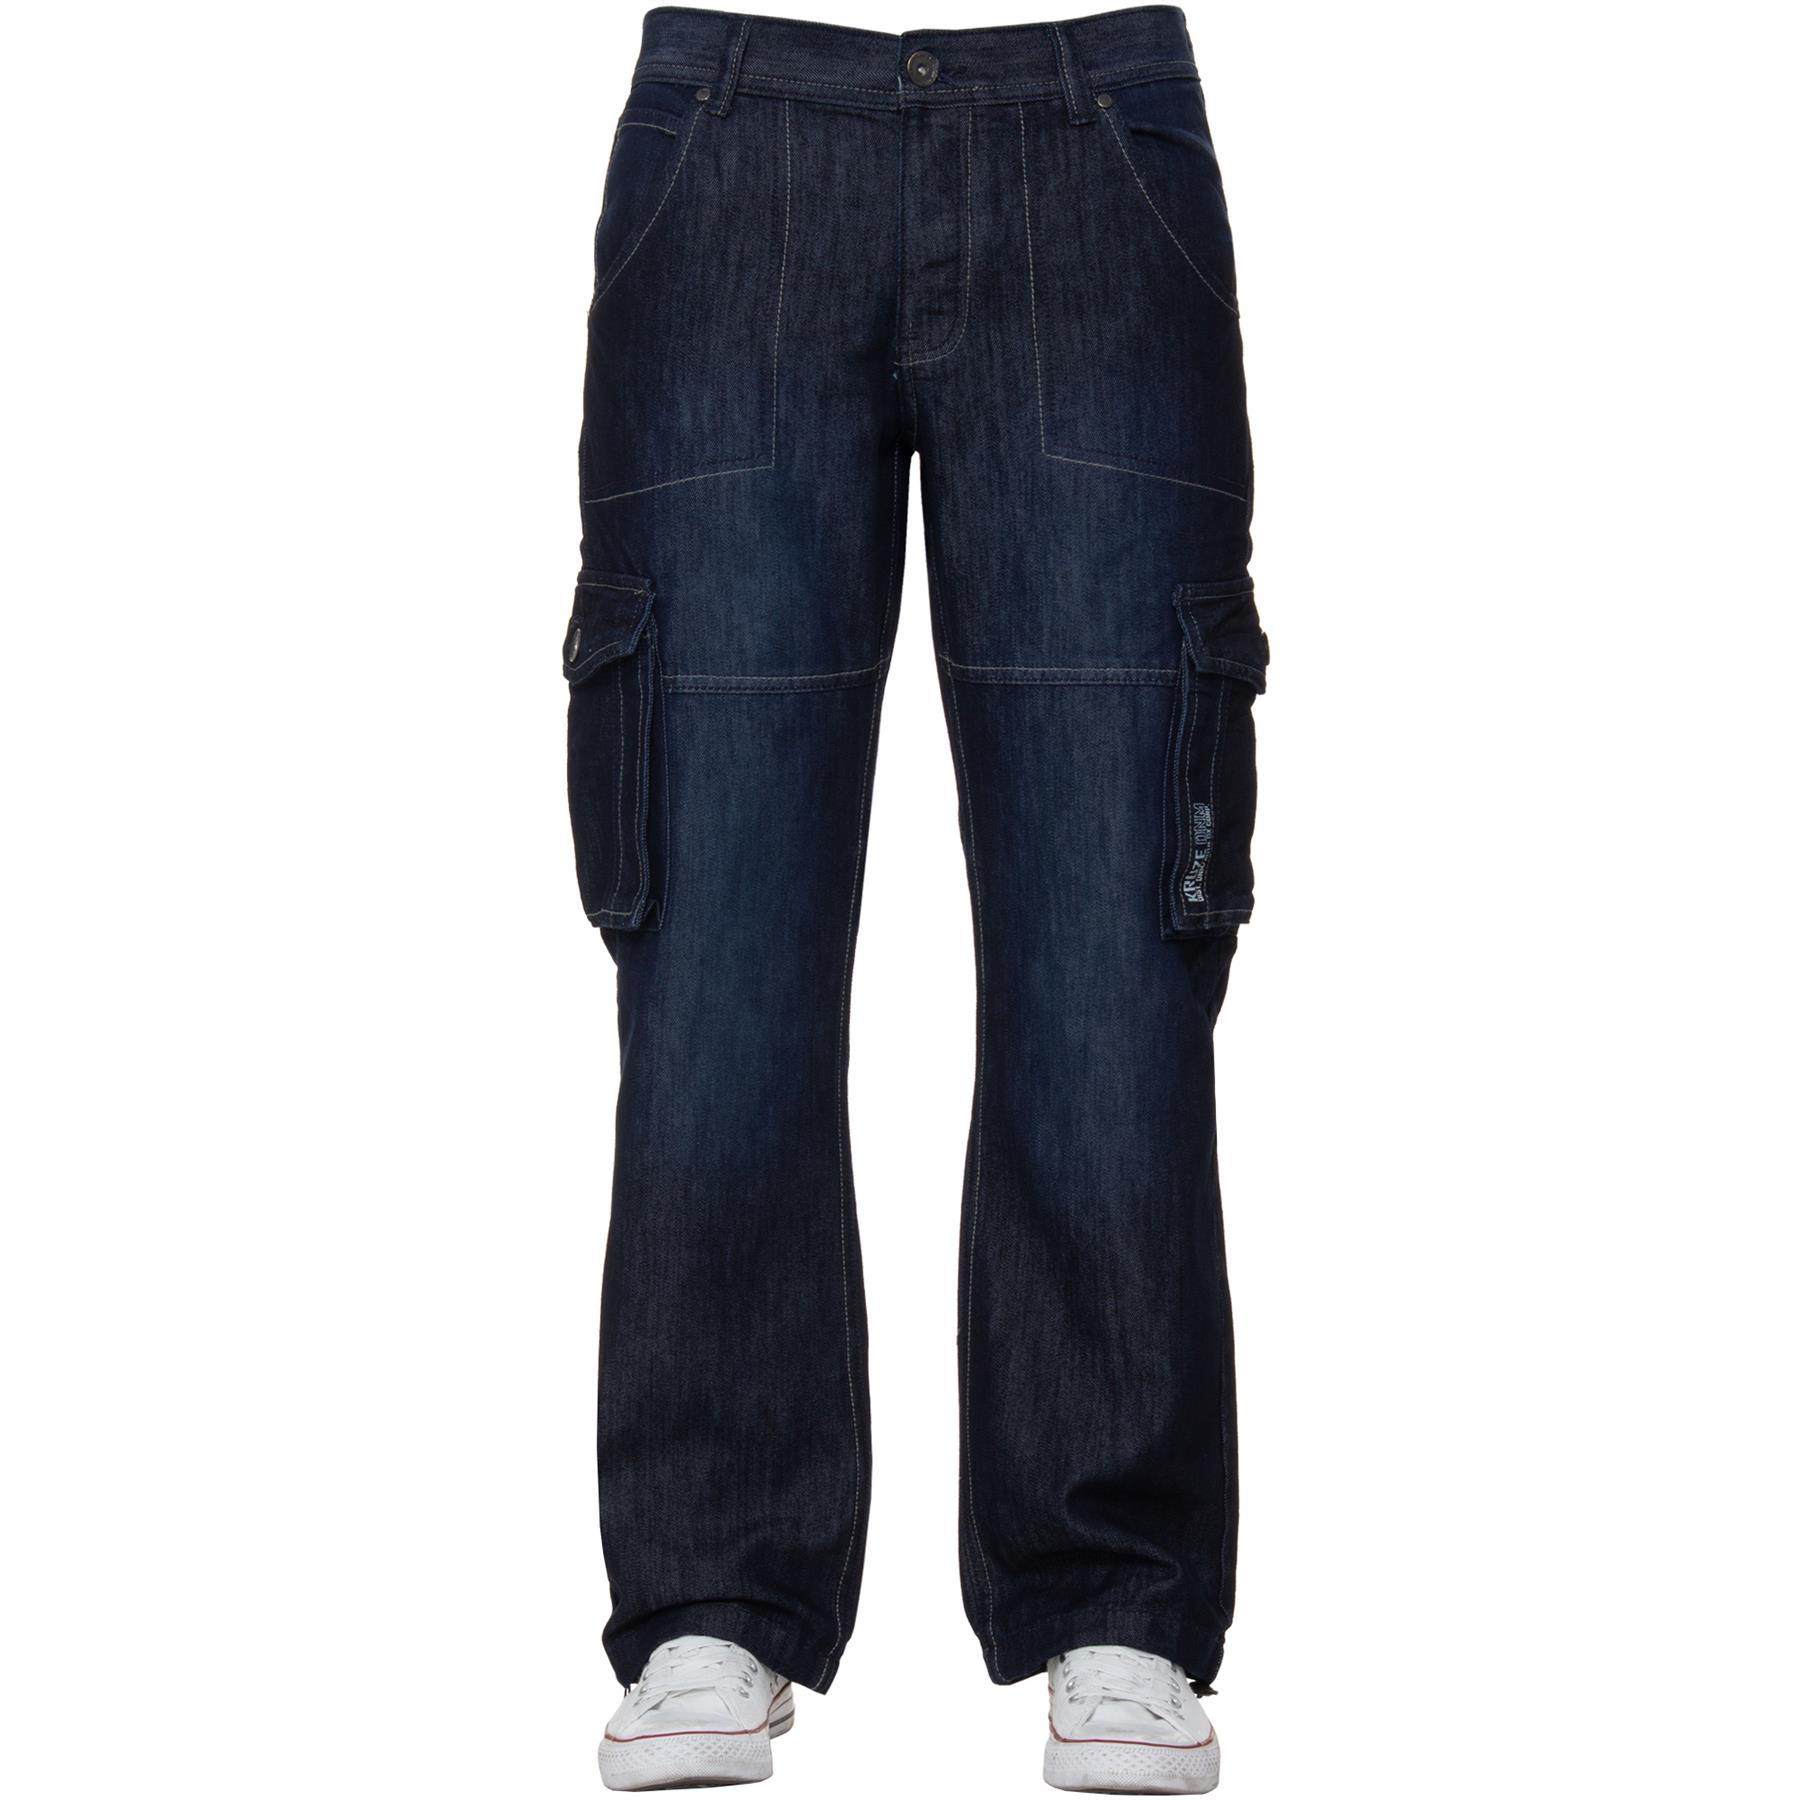 Kruze-Mens-Combat-Jeans-Casual-Cargo-Work-Denim-Trousers-Big-Tall-All-Waists thumbnail 10